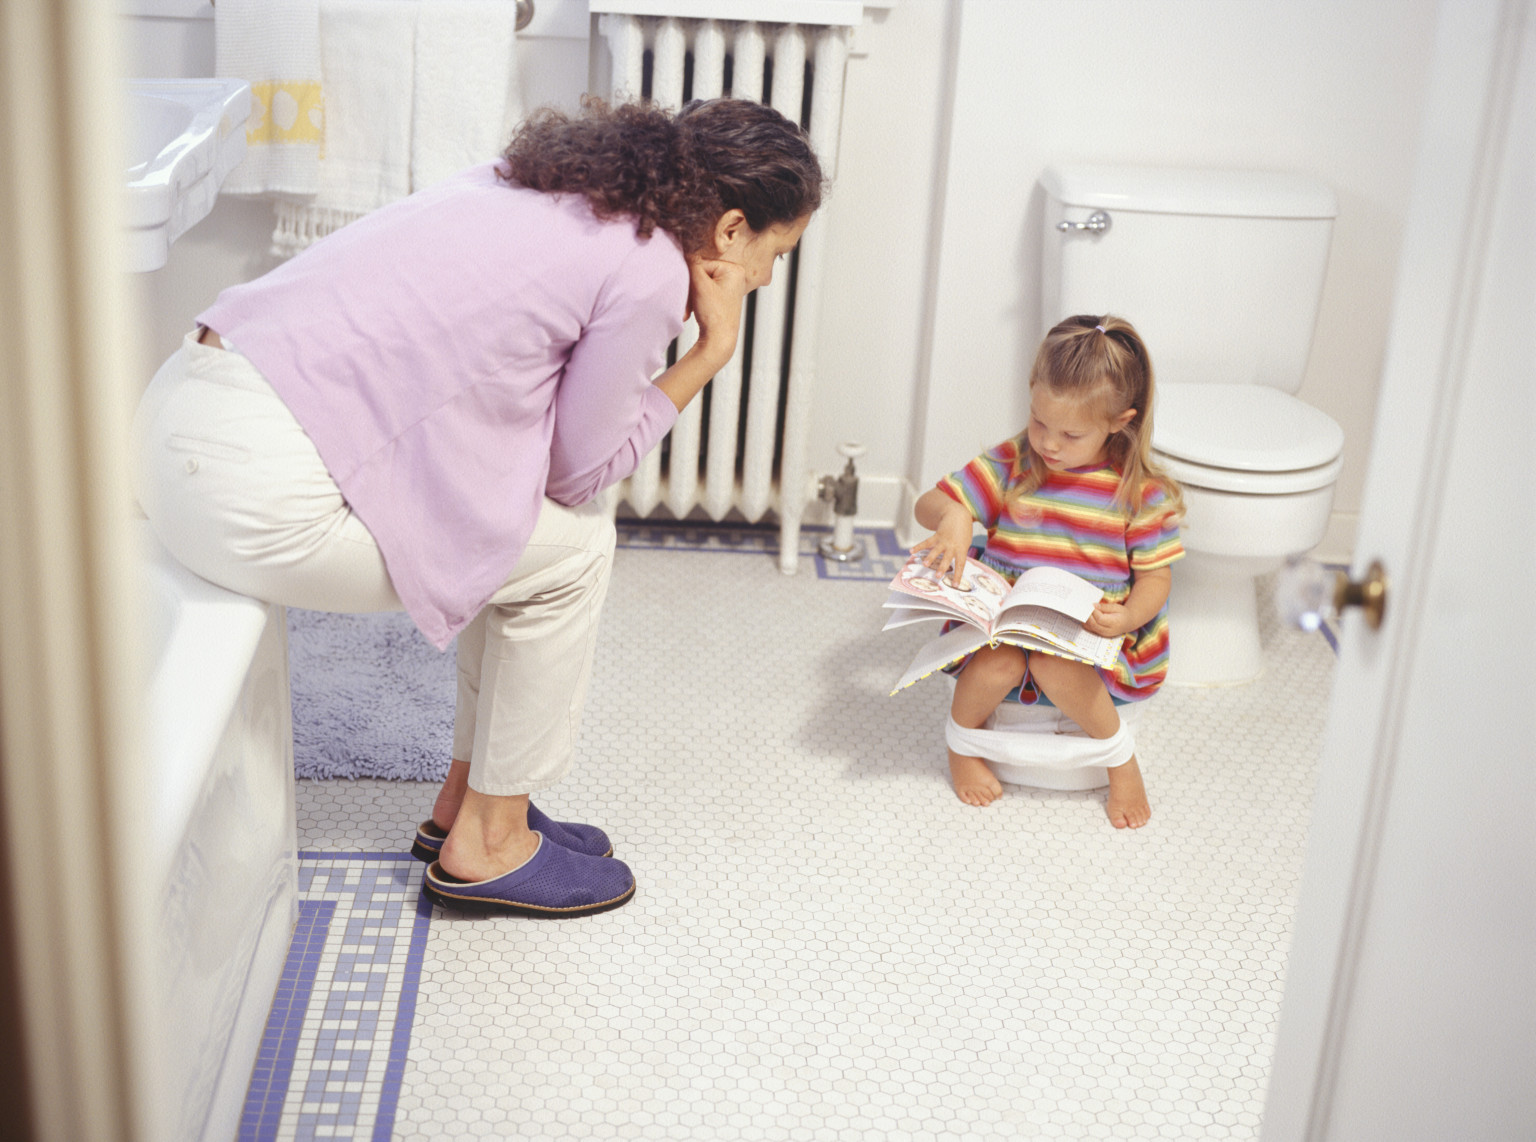 Potty Training Toilet : A definitive potty training guide huffpost